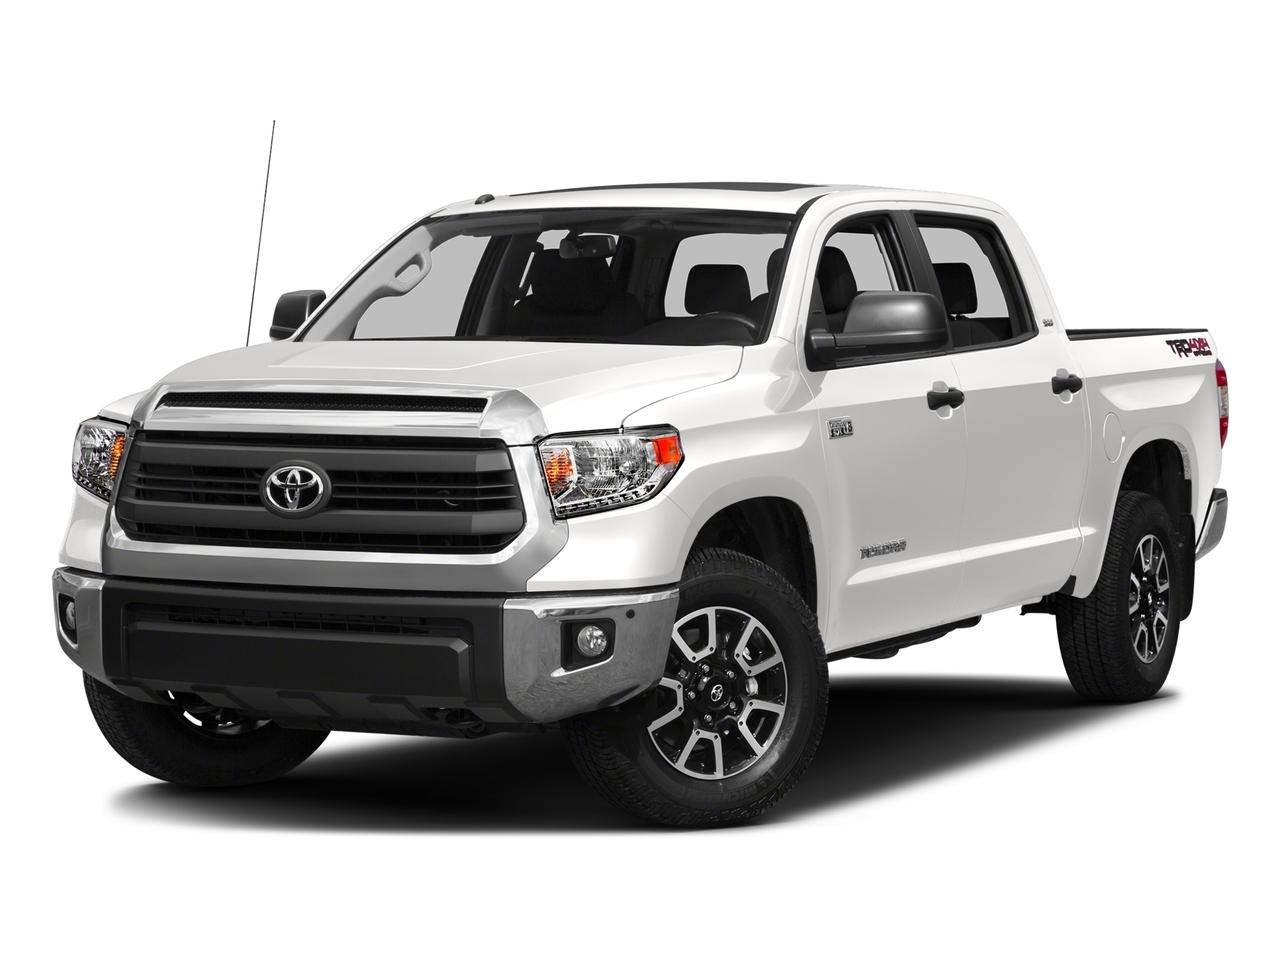 2016 Toyota Tundra 2WD Truck Vehicle Photo in San Antonio, TX 78257